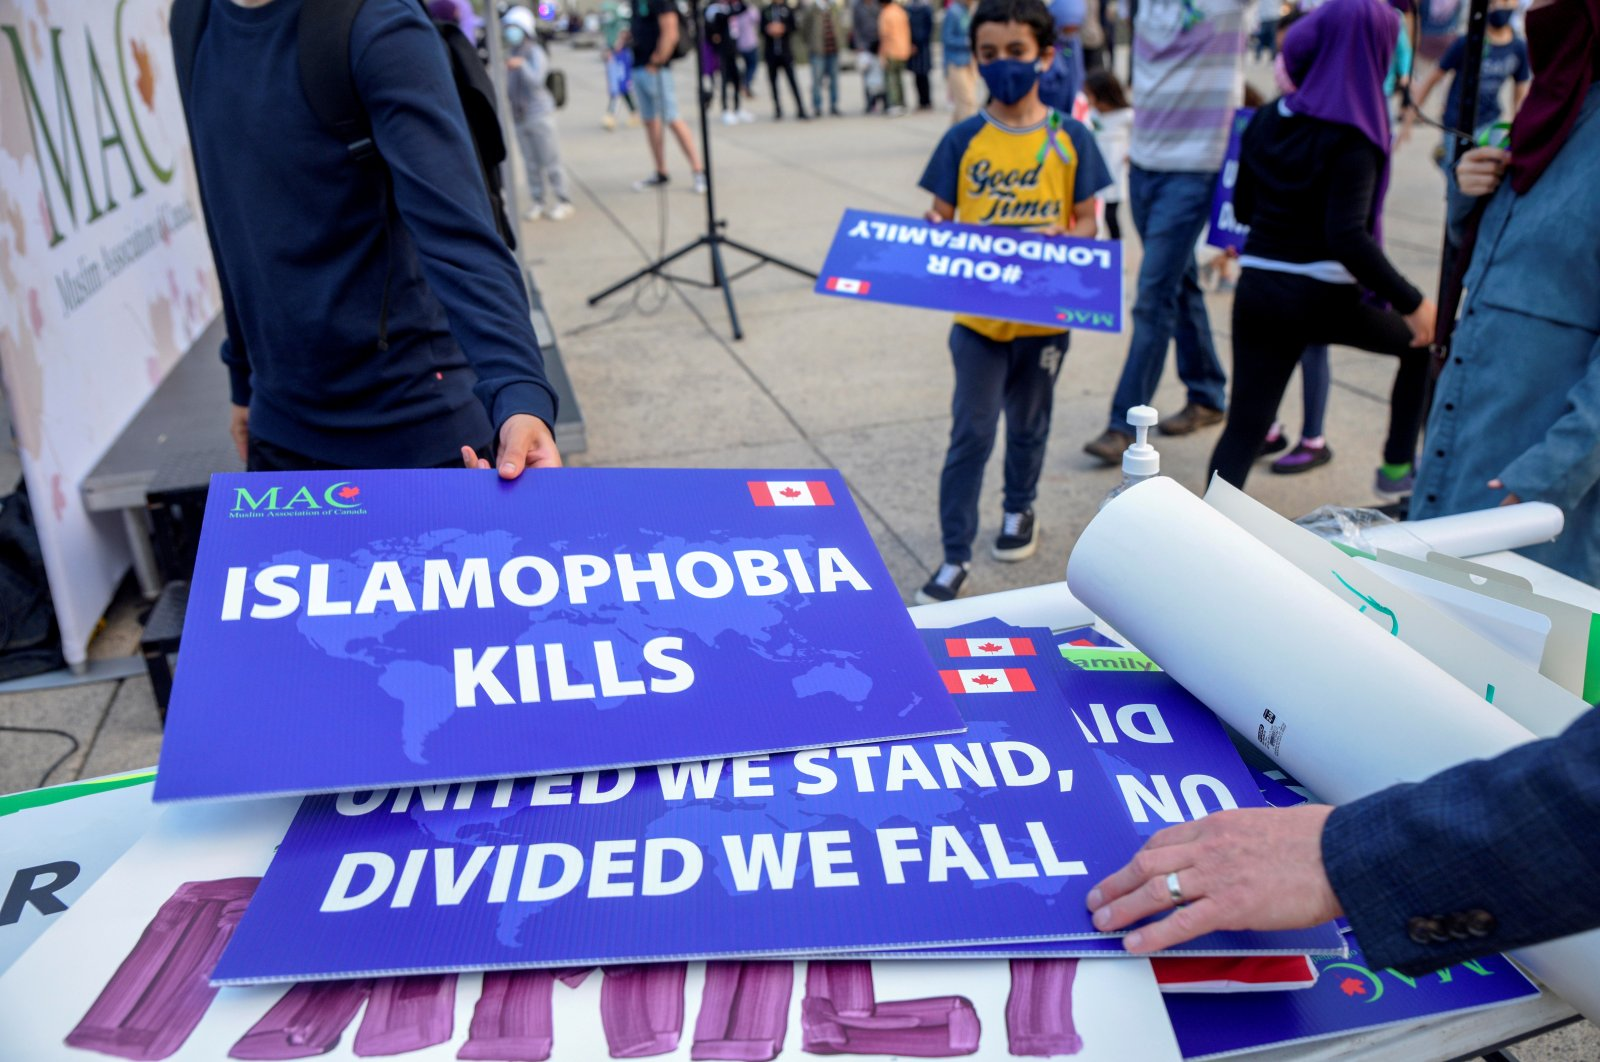 Attendees return signs after a rally to highlight Islamophobia, sponsored by the Muslim Association of Canada, Toronto, Ontario, Canada, June 18, 2021. (REUTERS Photo)